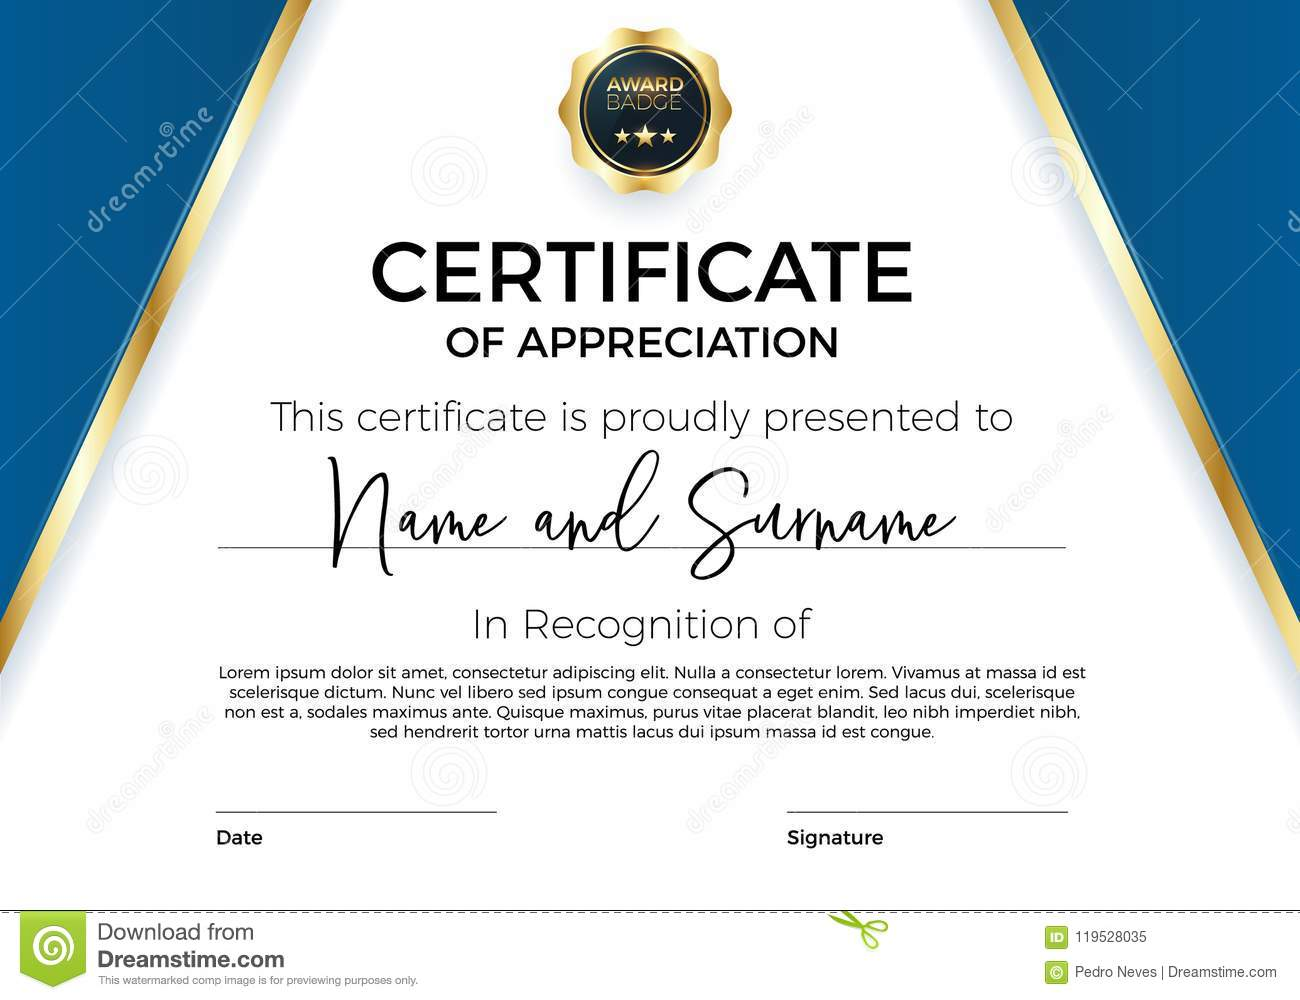 Certificate Of Appreciation Or Achievement With Award ...